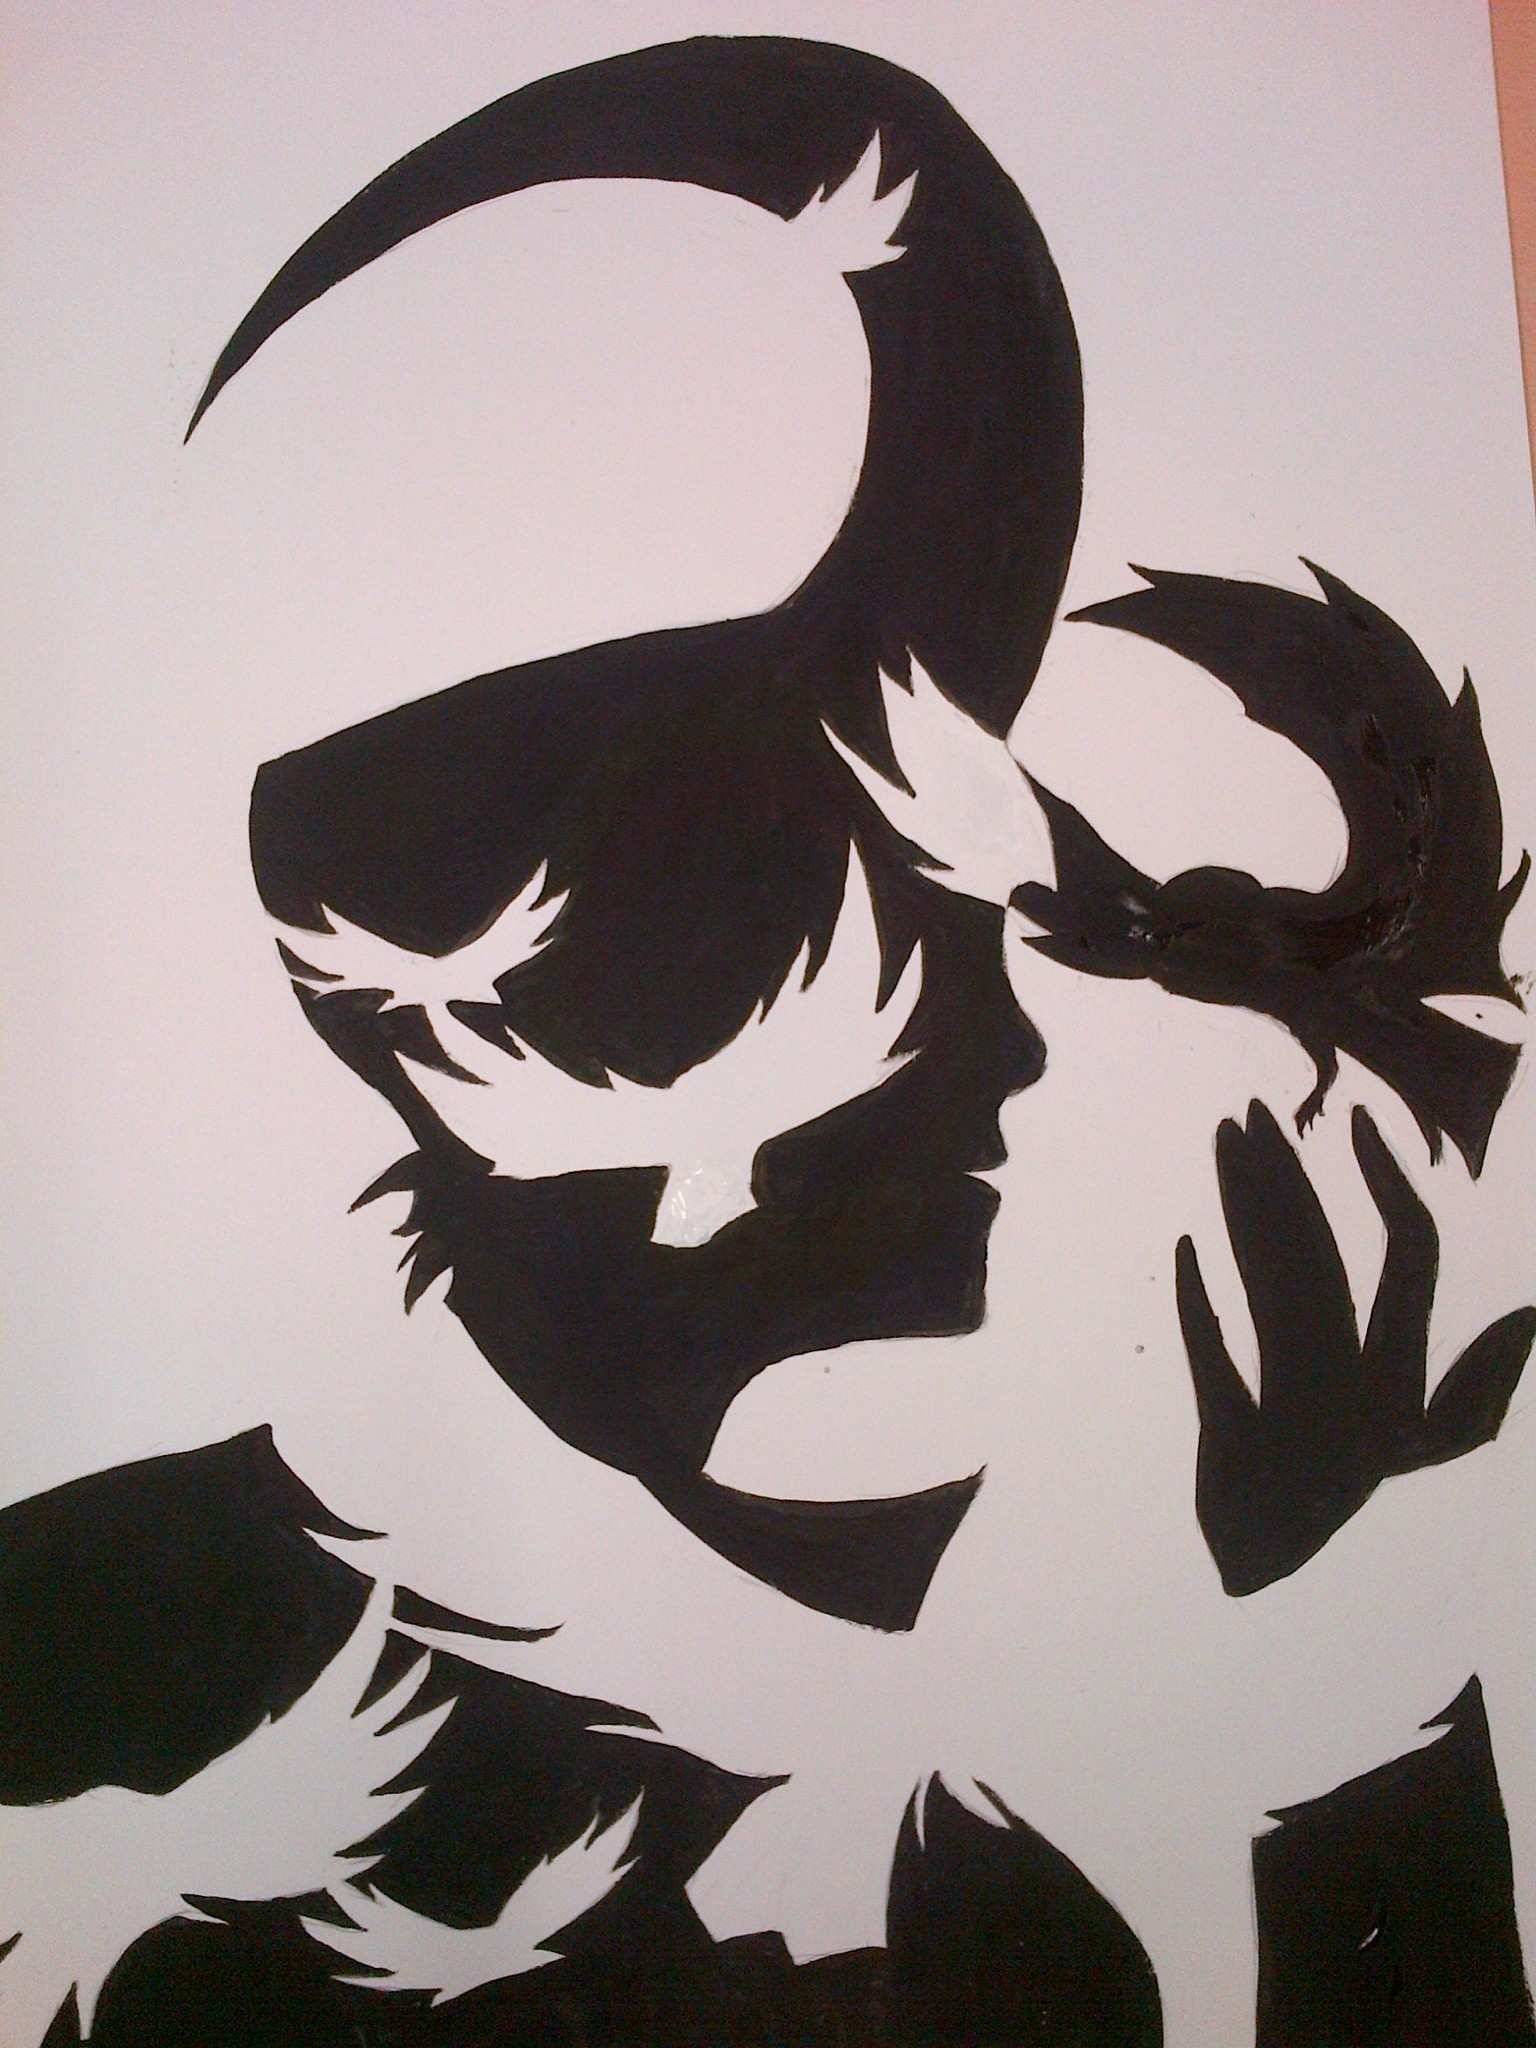 Loki Painting Silhouette · Silhouette Art · Art on Cut Out Keep